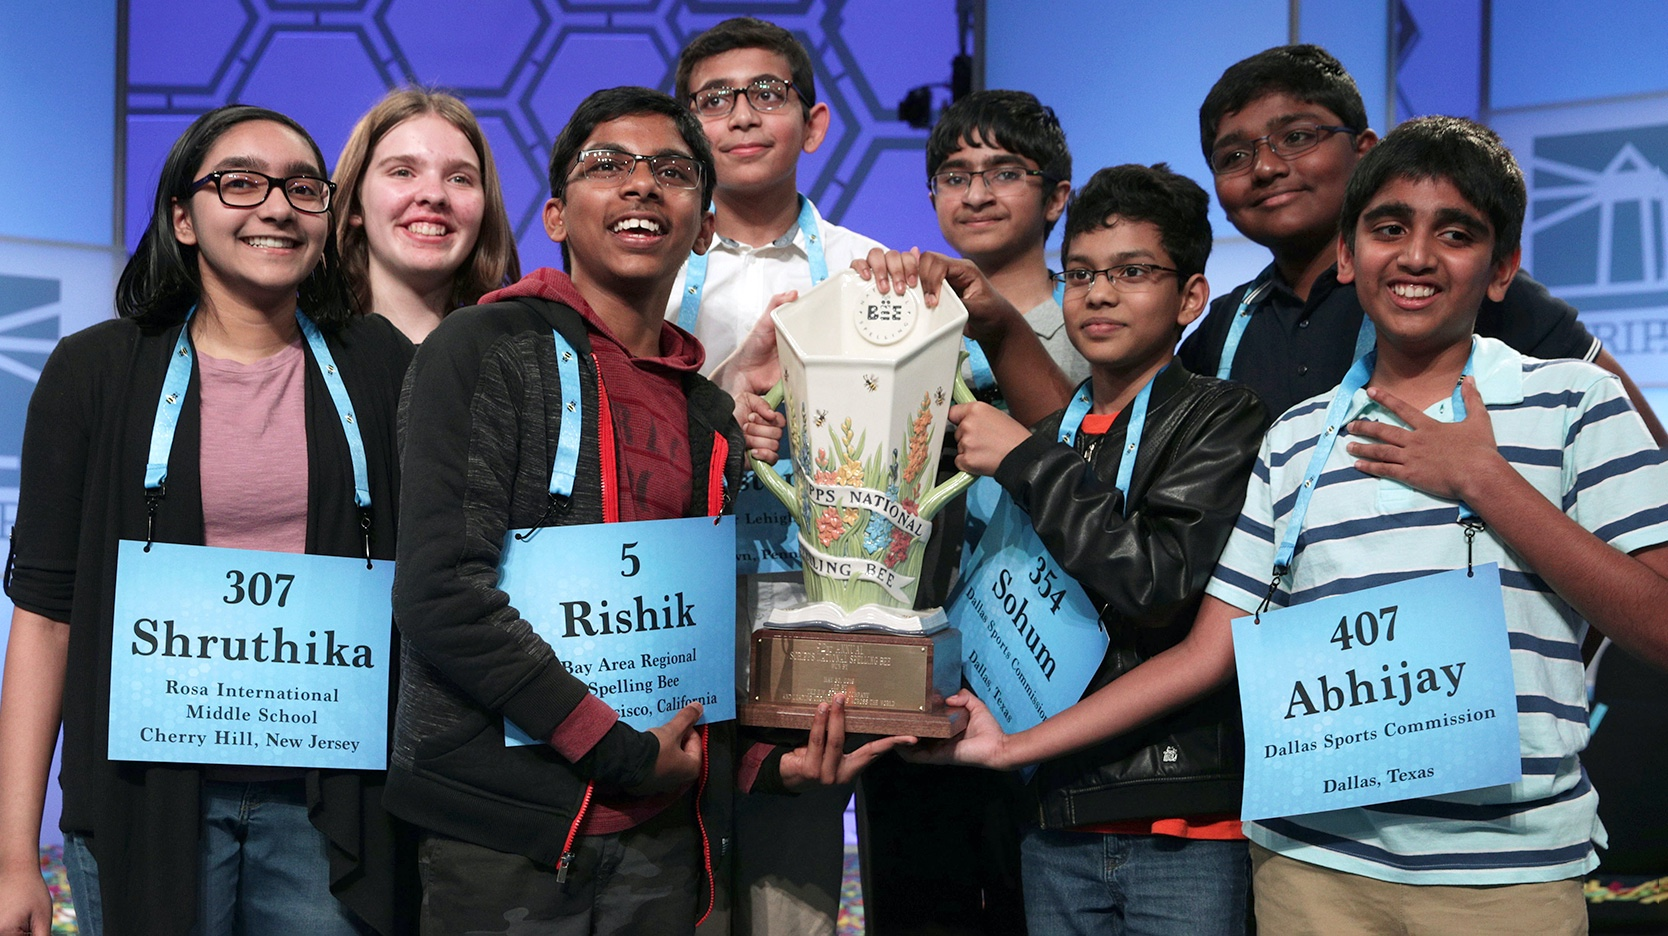 Winners of the 2019 Scripps National Spelling Bee